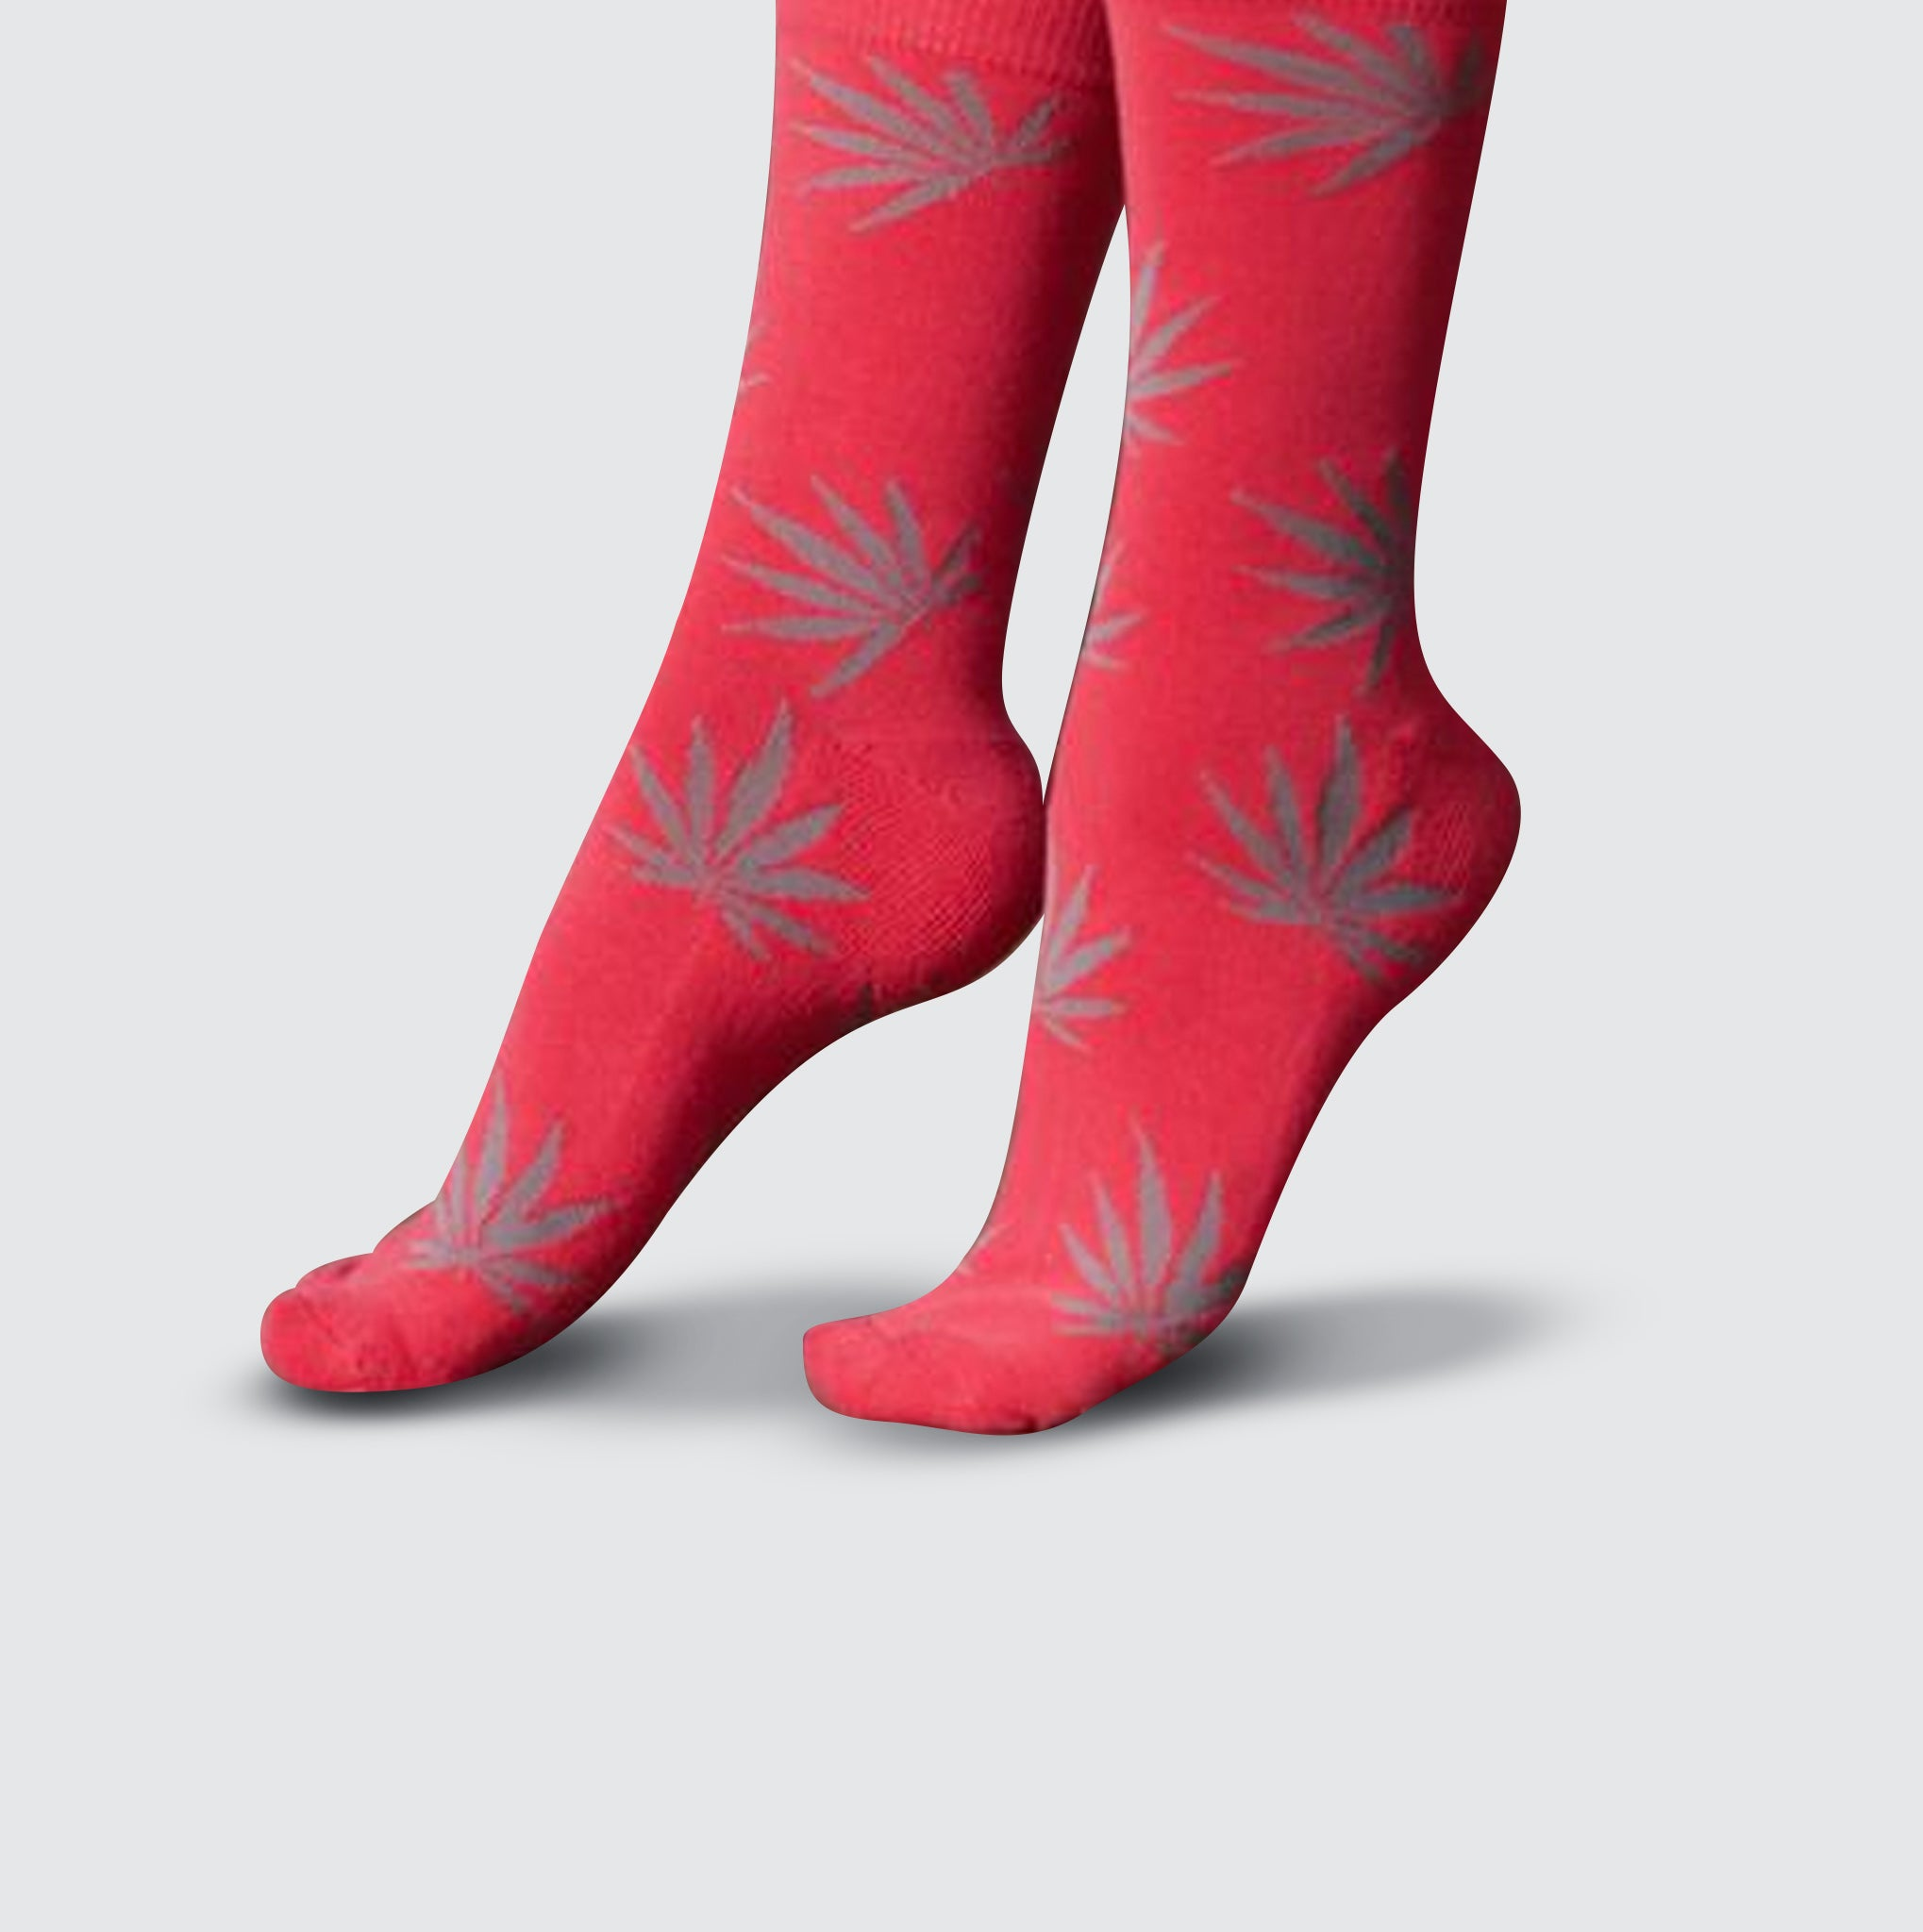 Cannabis Socks - Pink/Gray